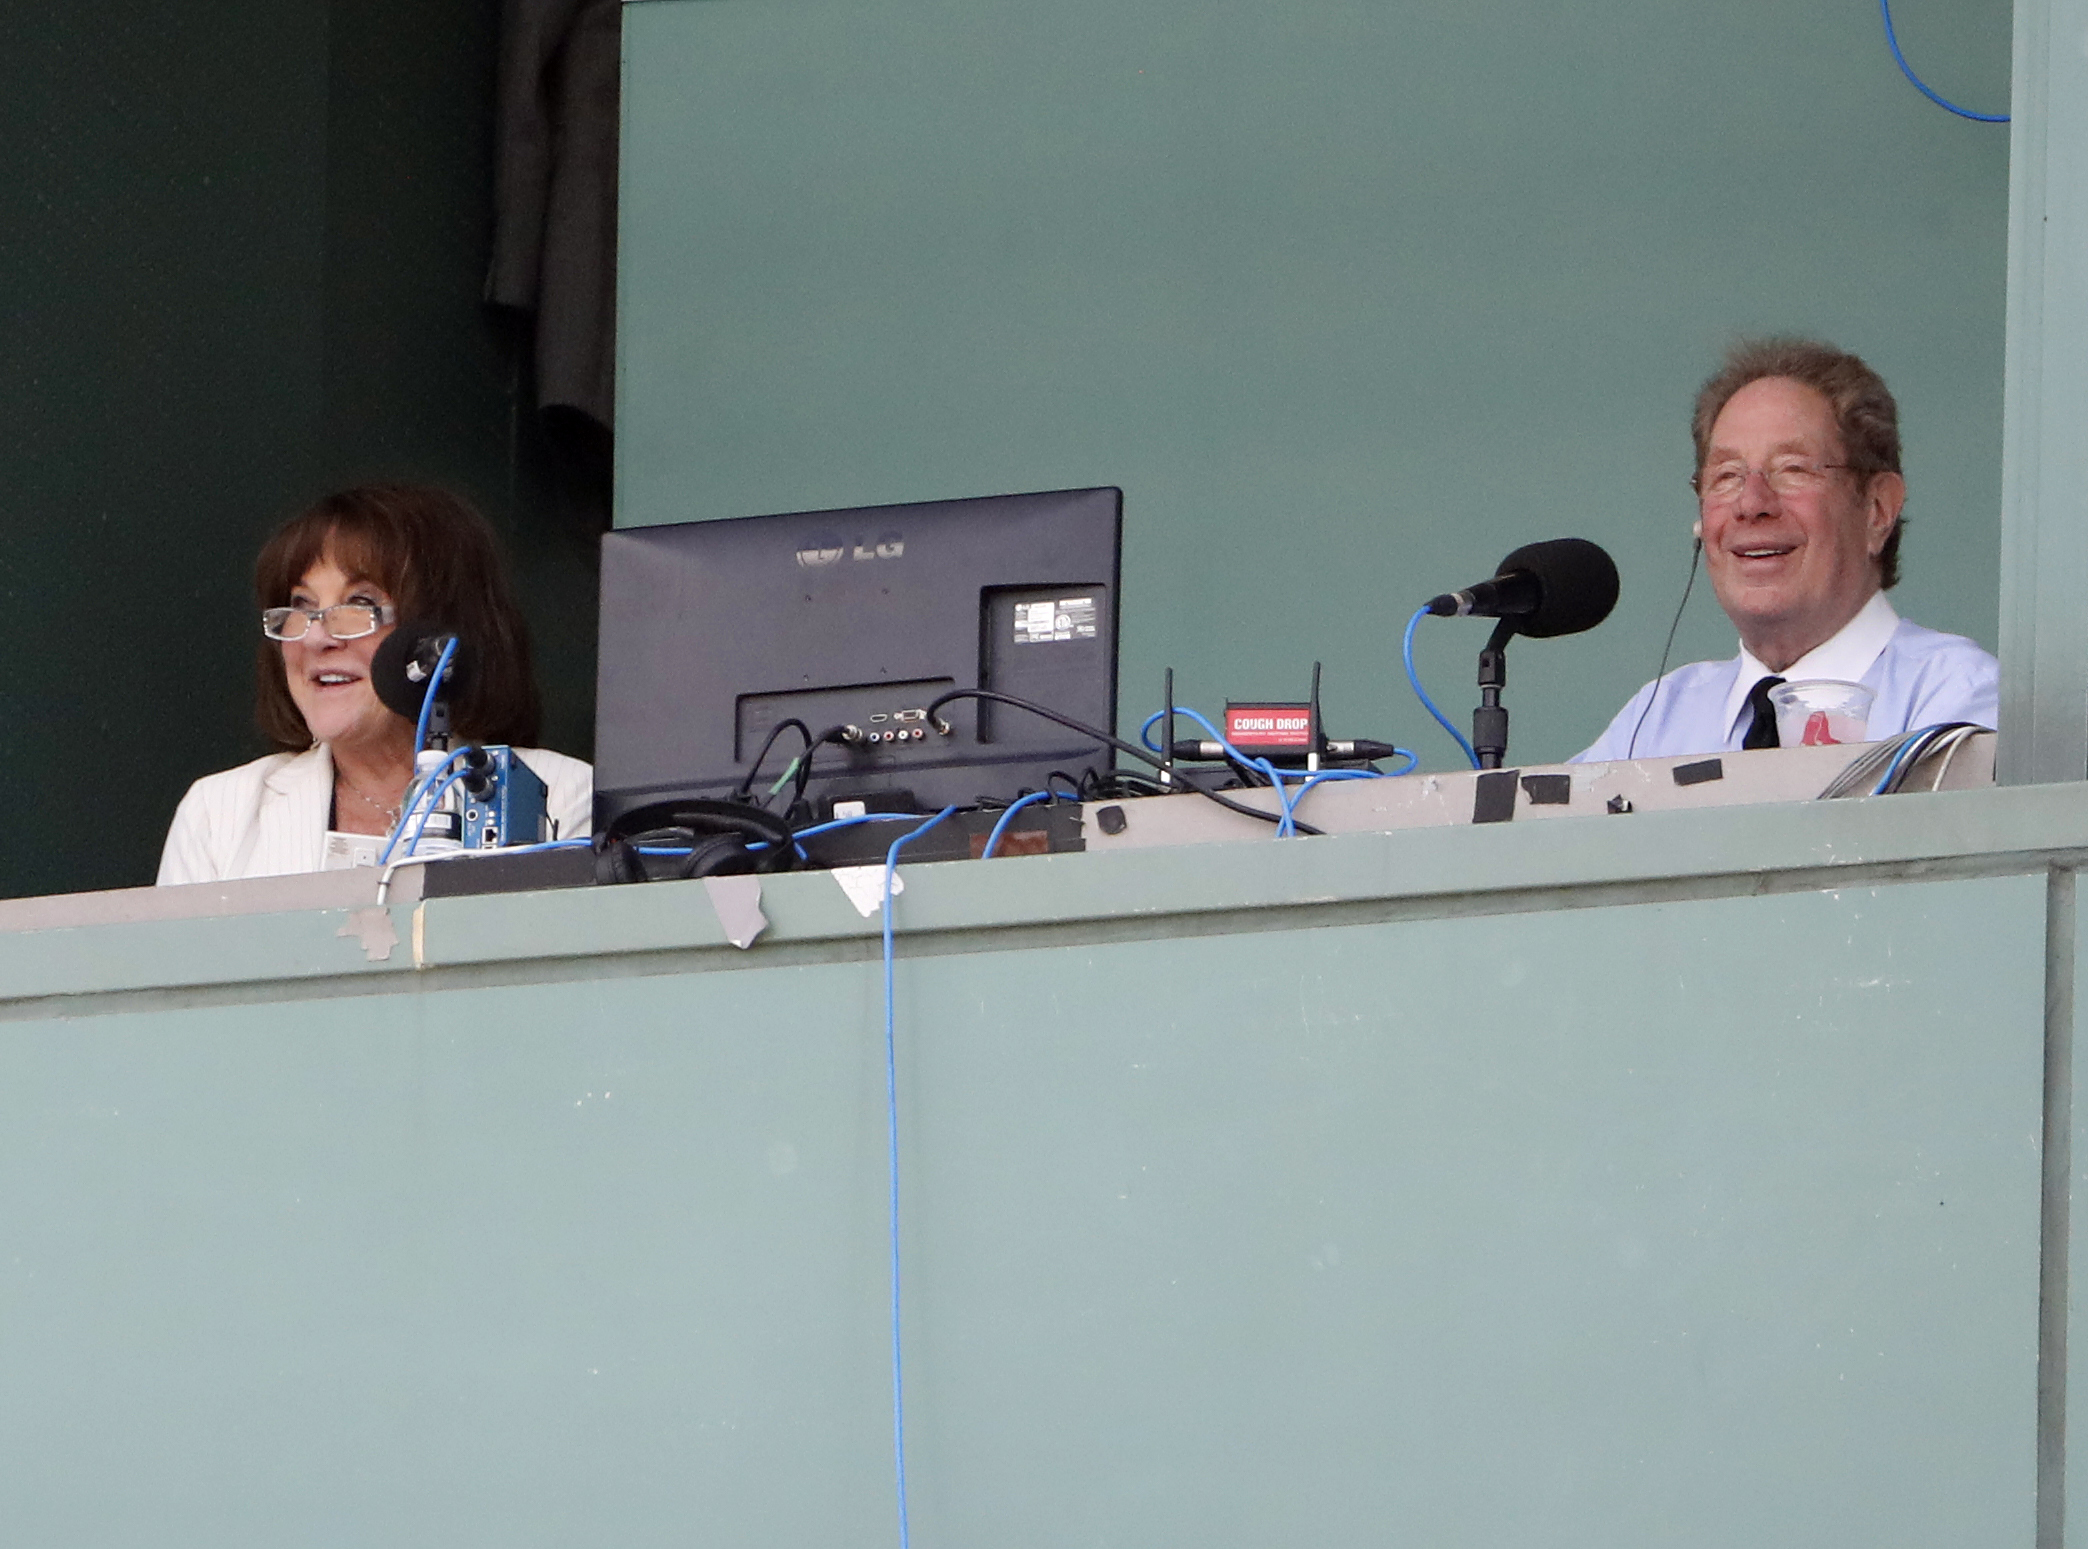 John Sterling Makes First Major On-Air Blunder During Game